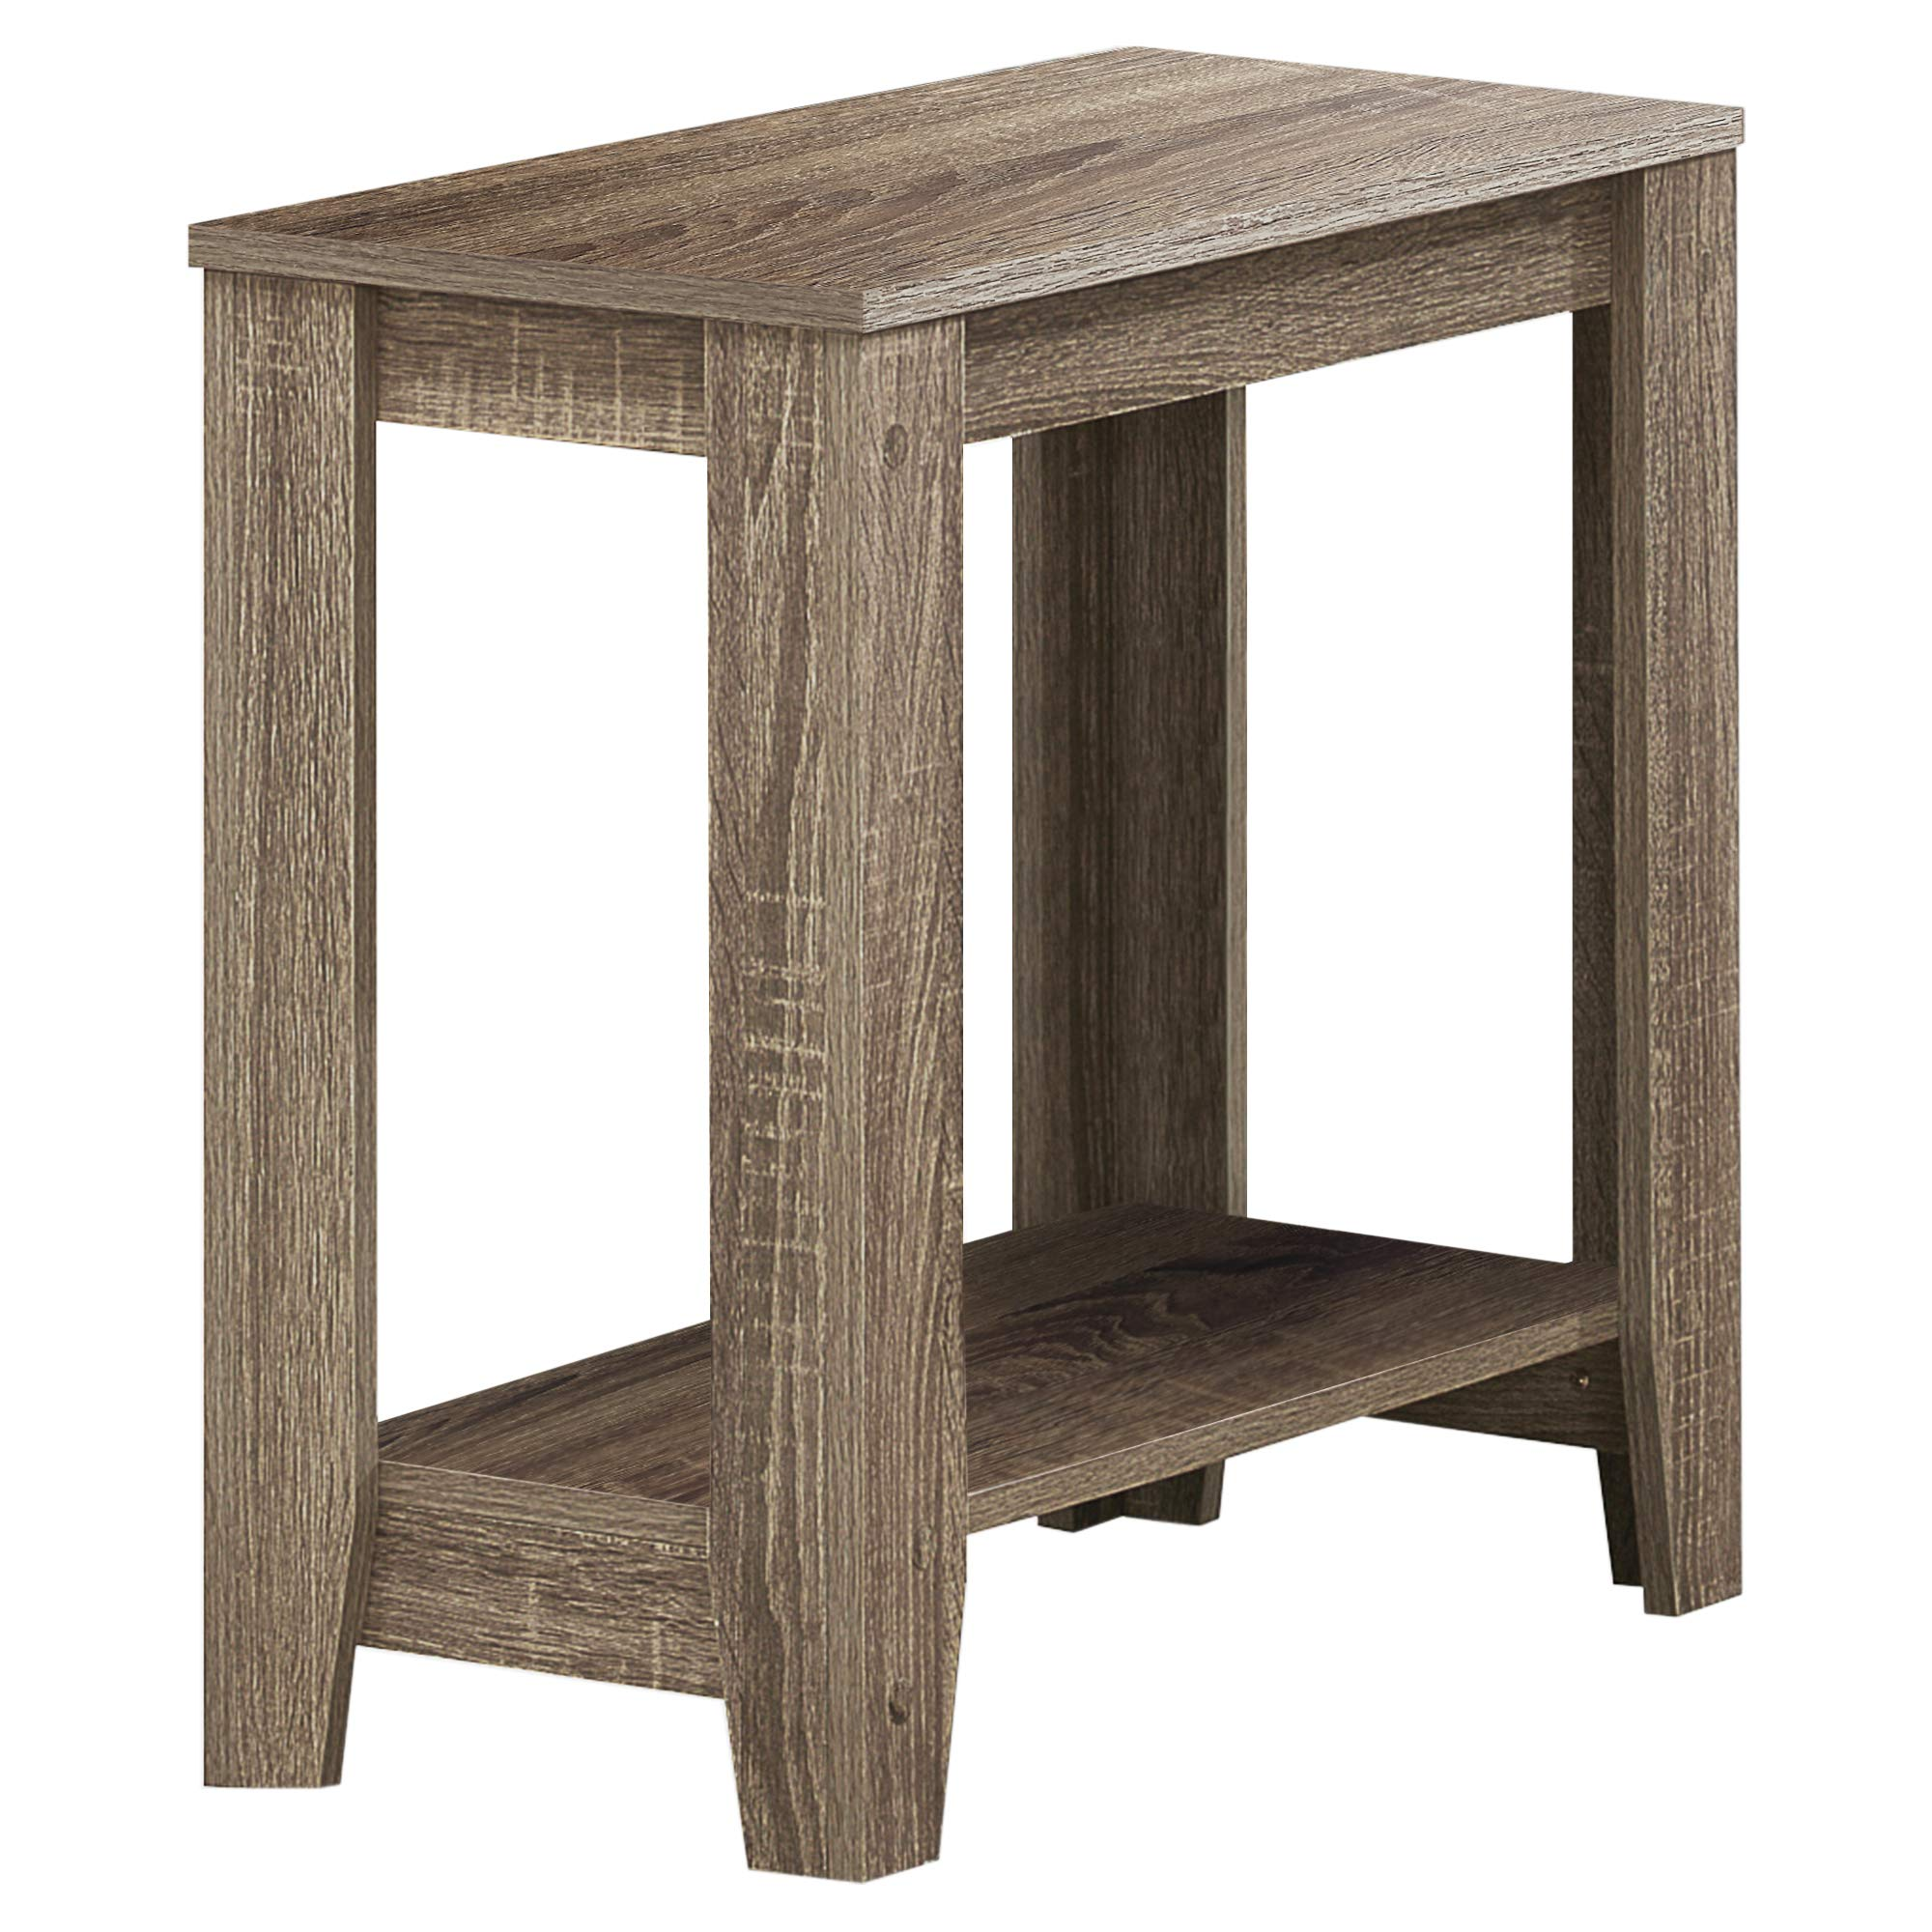 Monarch Specialties I I 3115 Accent End Side Lamp Table with Shelf, 24'' x 12'' x 22'', Dark Taupe